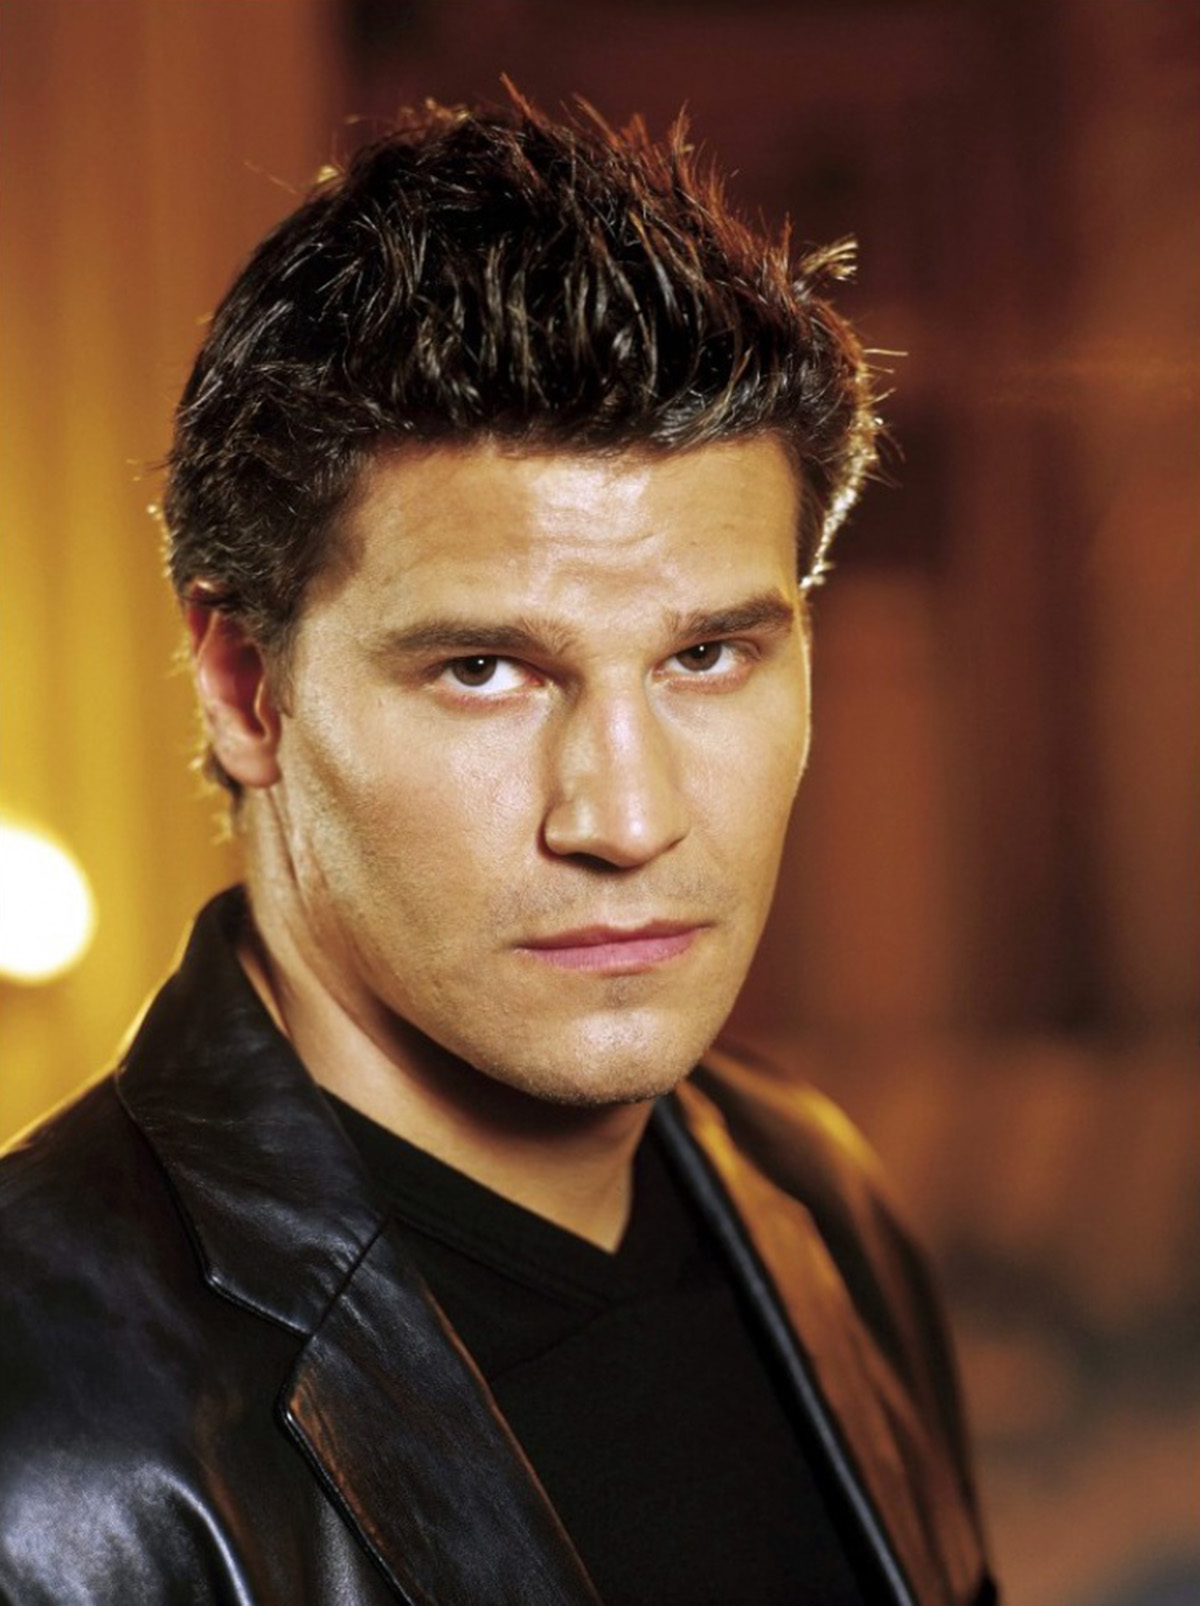 david boreanaz angel season 1 - photo #21